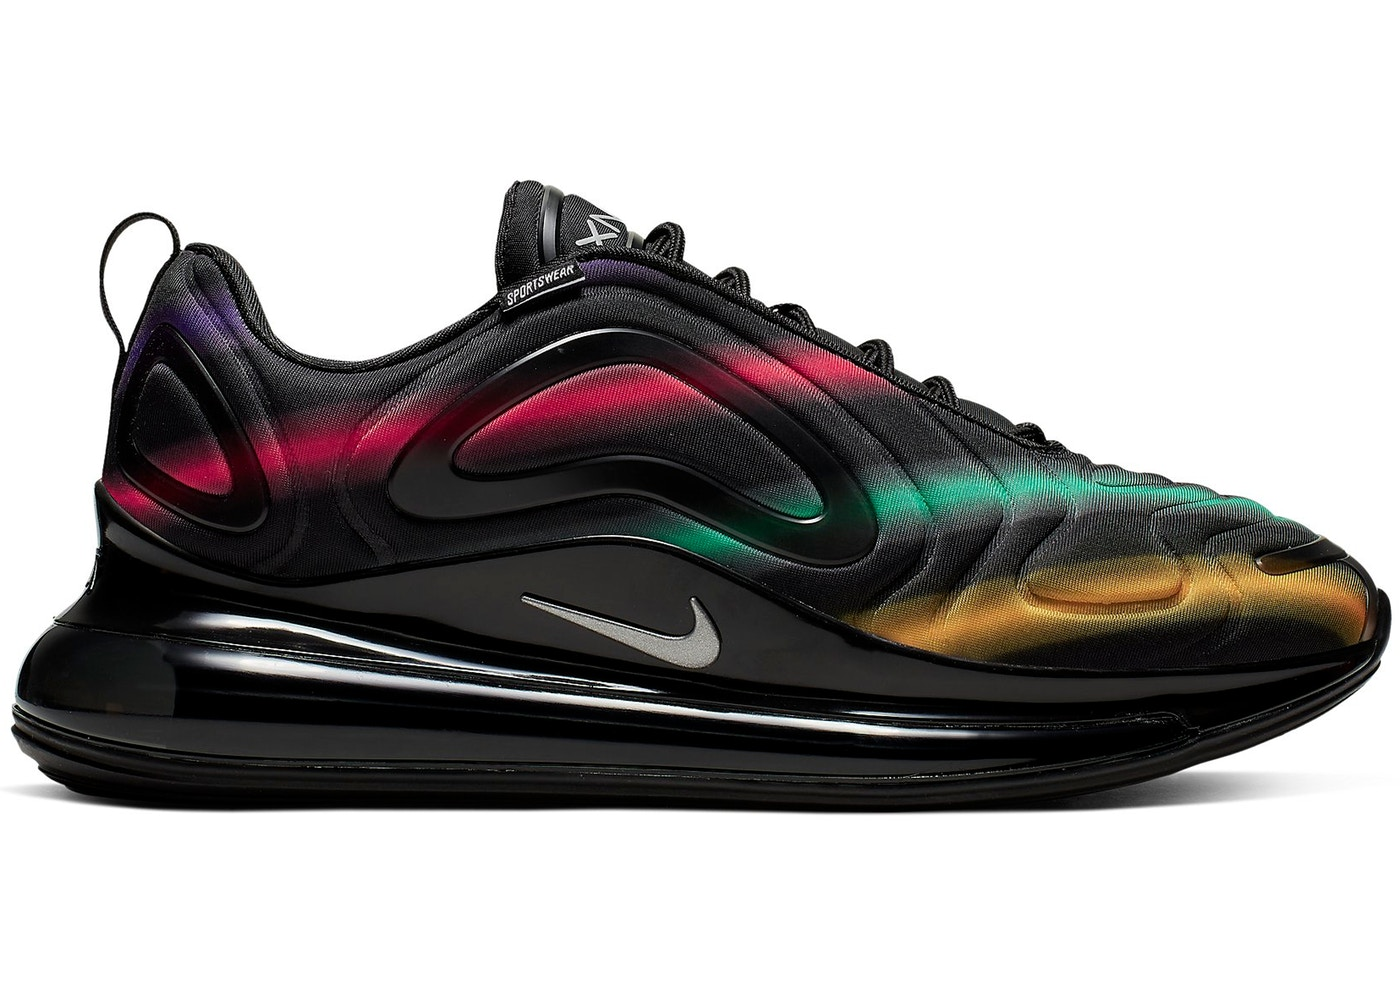 New Nike Air Max 720 Black Neon Green On Sale